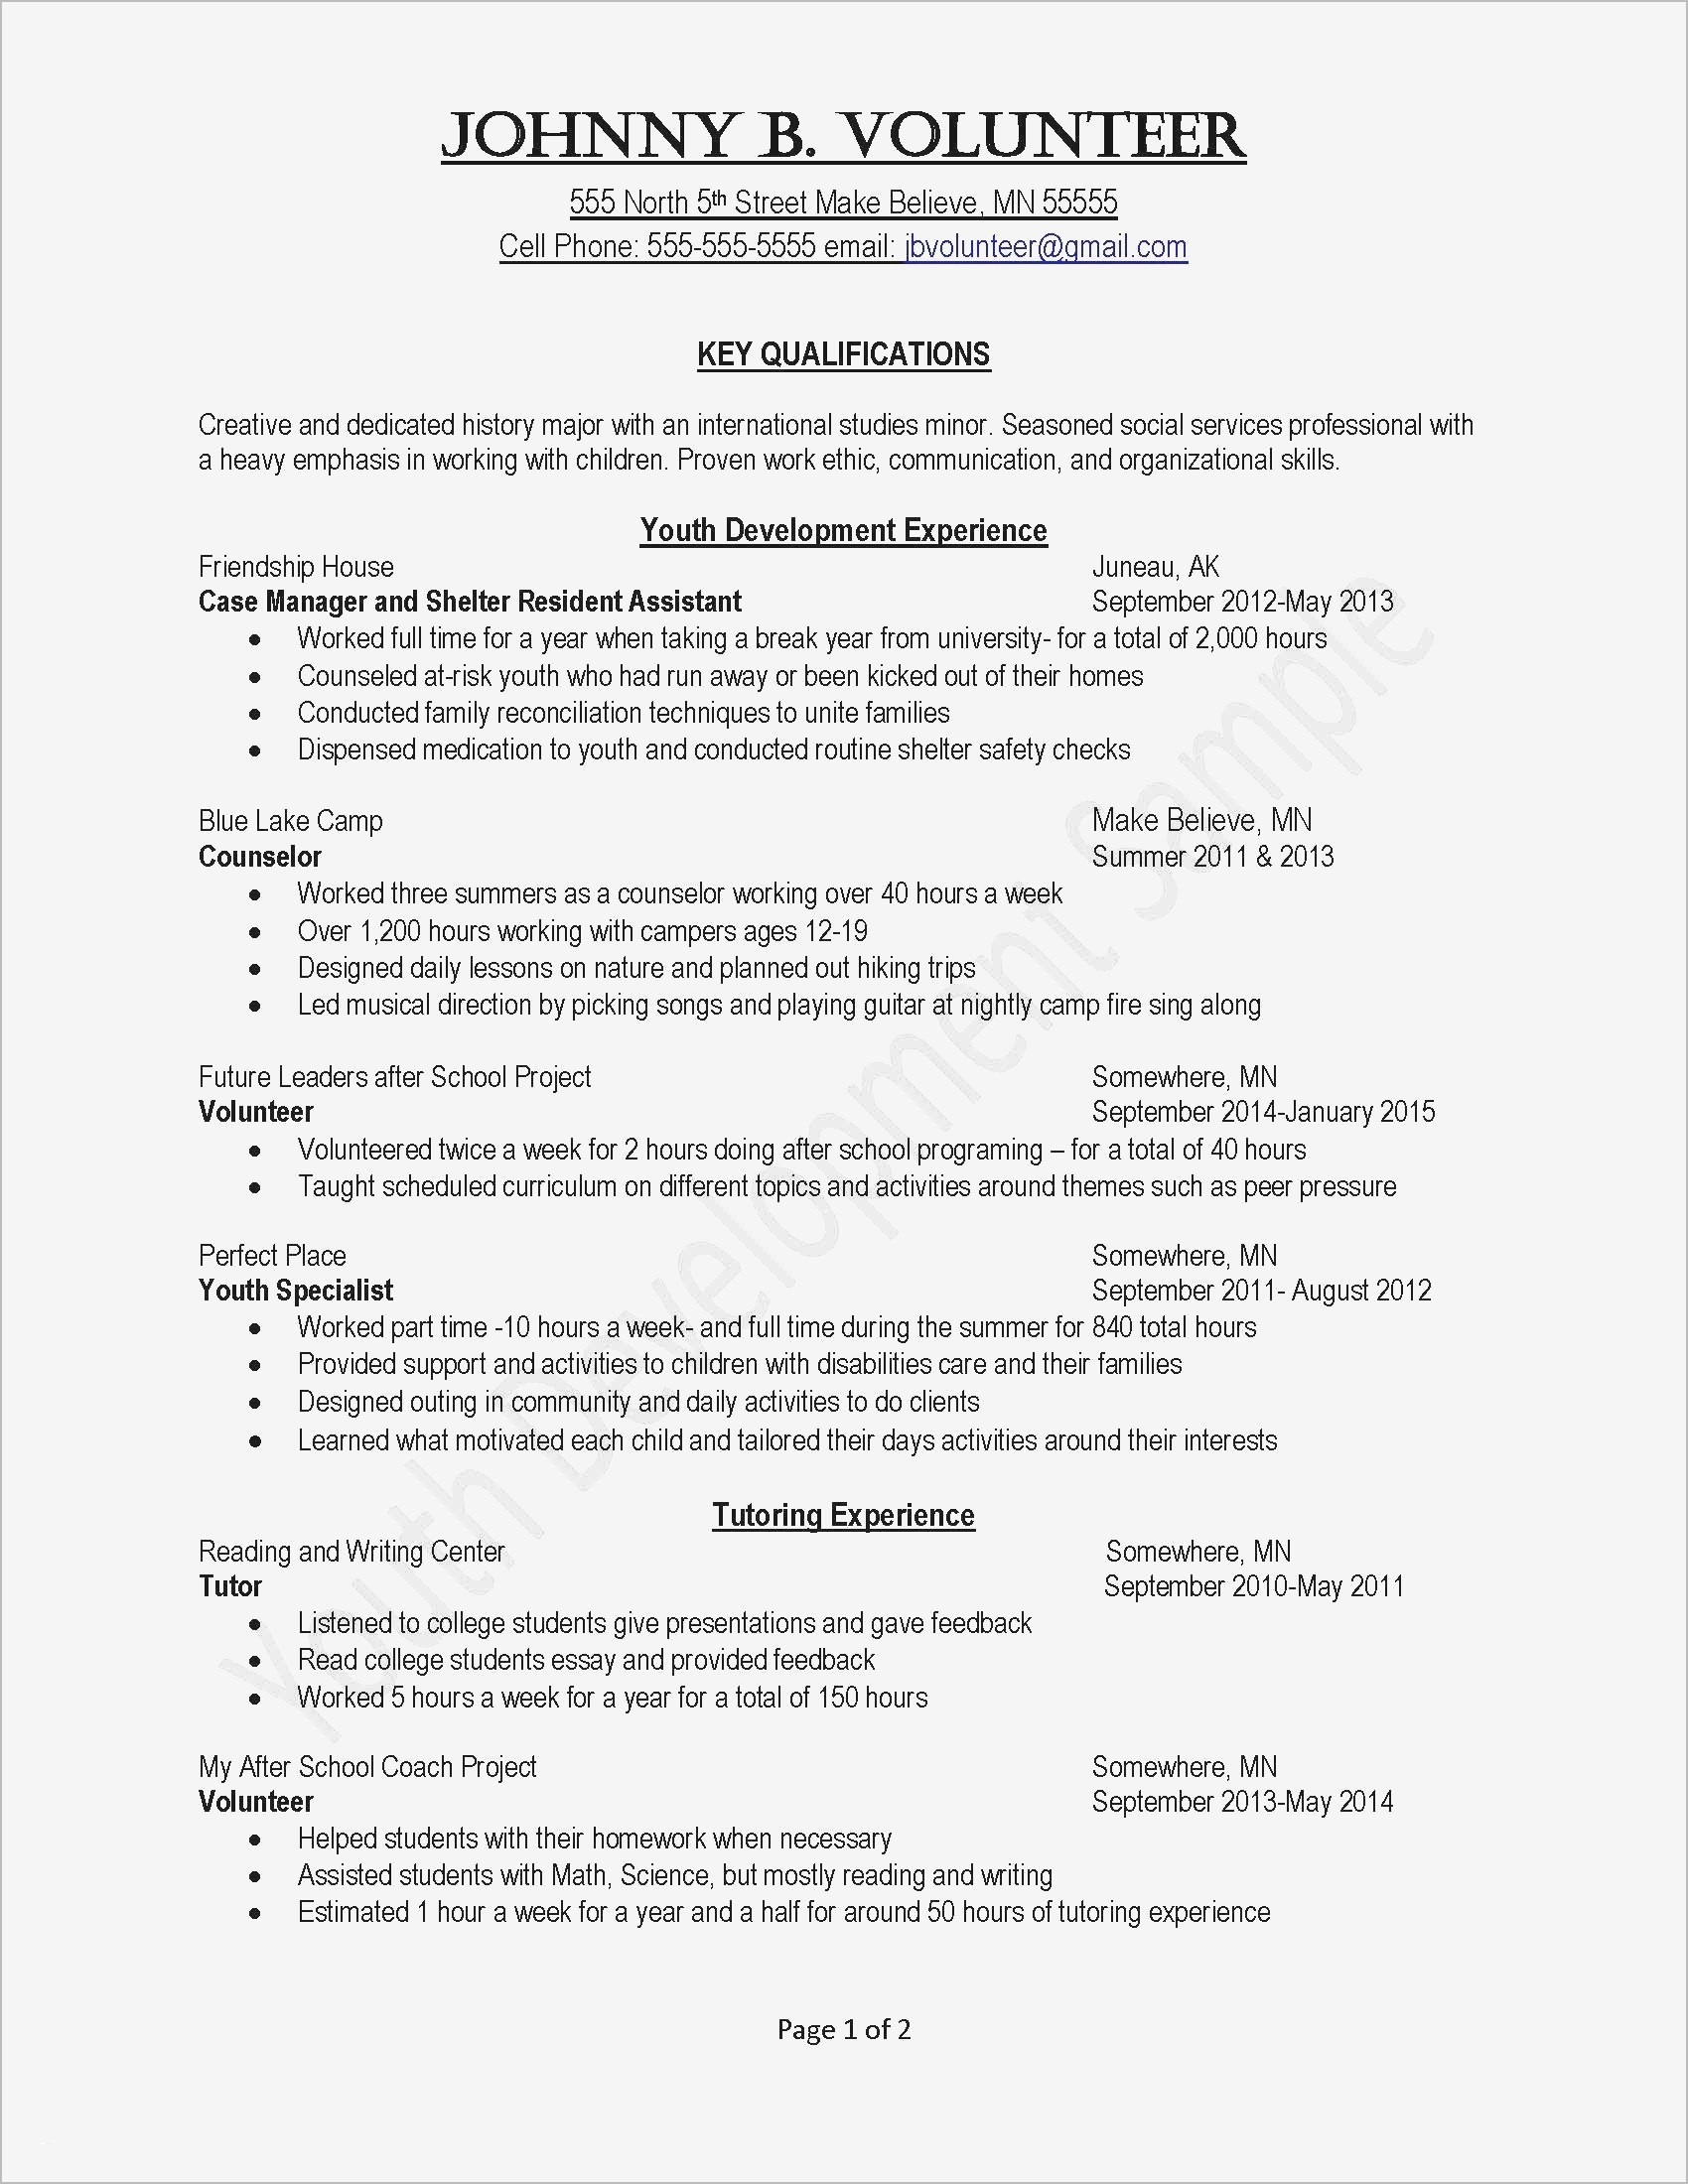 Social Worker Cover Letter Template - Child Care Resume Templates Best Job Fer Letter Template Us Copy